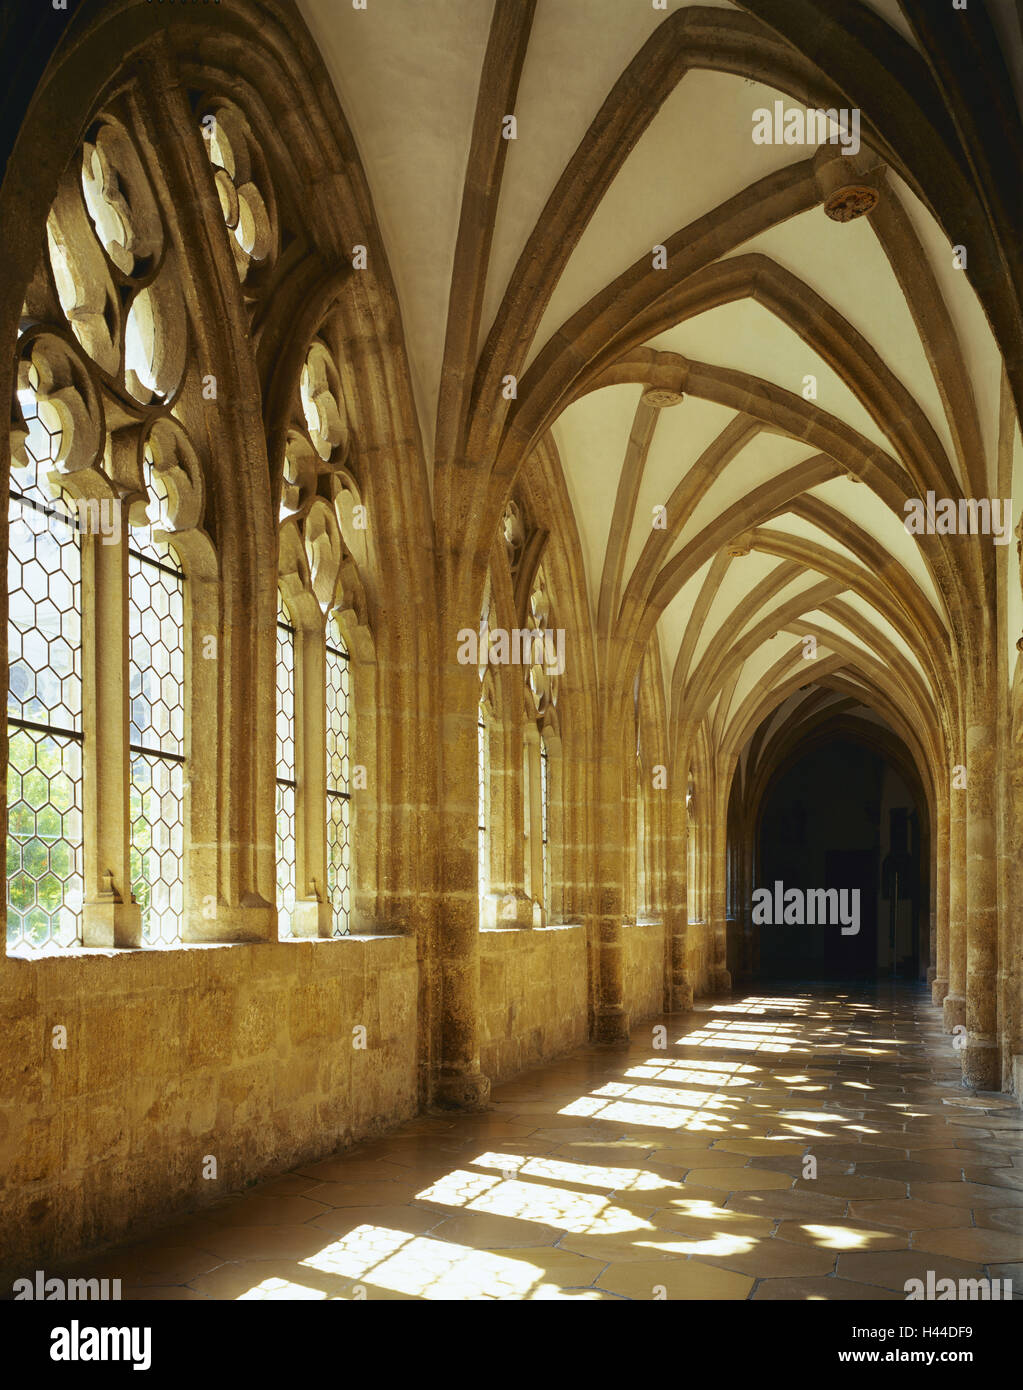 Germany, Bavaria, Eichstatt, cathedral, cloister, Late-Gothic, light game, town, university town, church, inside, - Stock Image